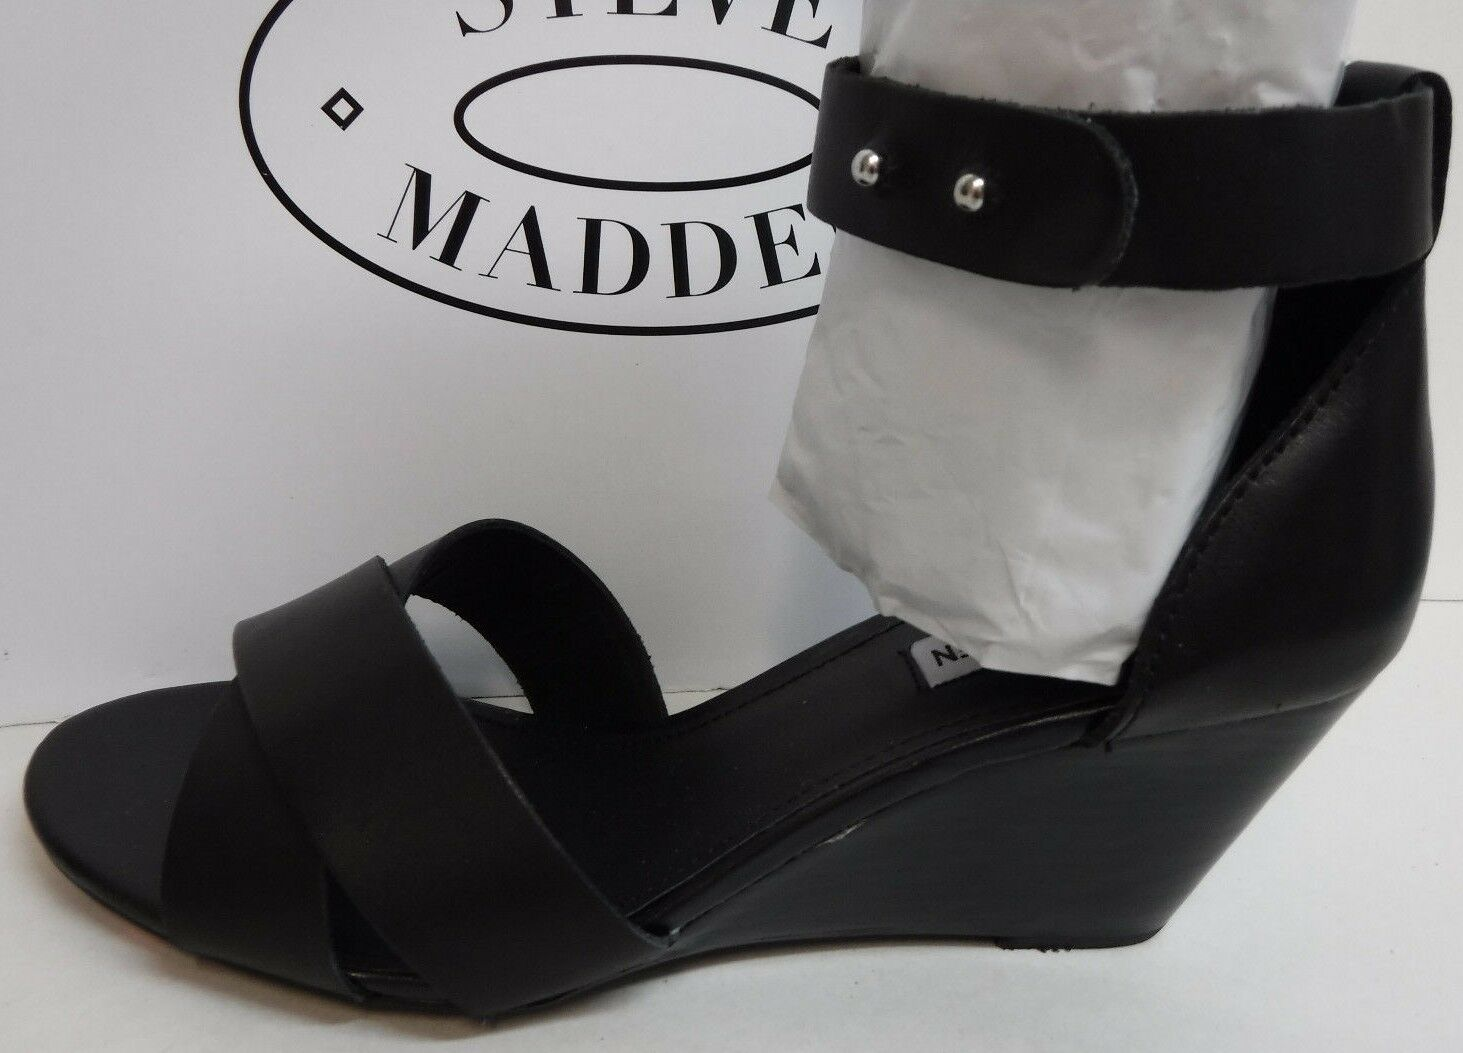 Steve Madden Size 6.5 Black Leather Wedge Sandals New Womens Shoes